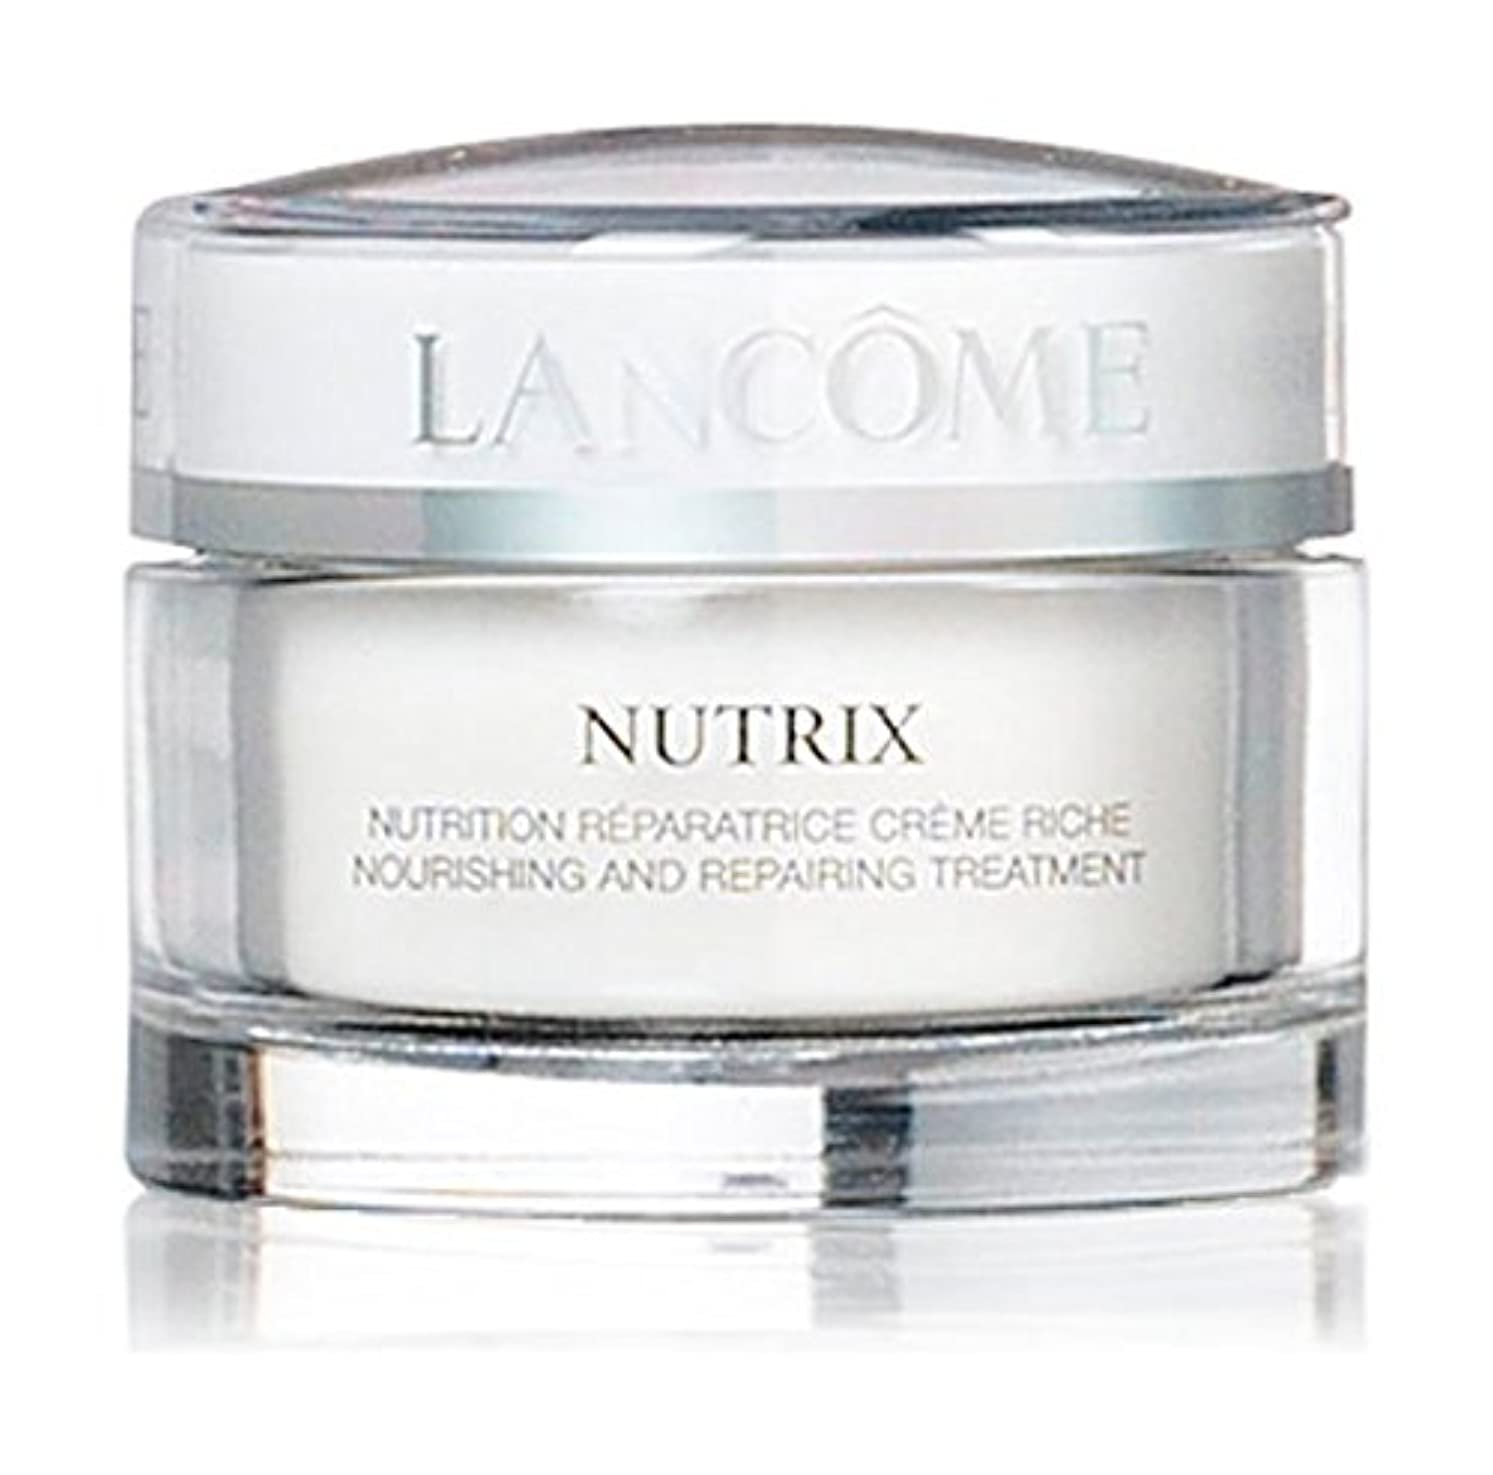 リファインパラメータ海洋のランコム Nutrix Nourishing And Repairing Treatment Rich Cream - For Very Dry, Sensitive Or Irritated Skin 50ml/1.7oz並行輸入品